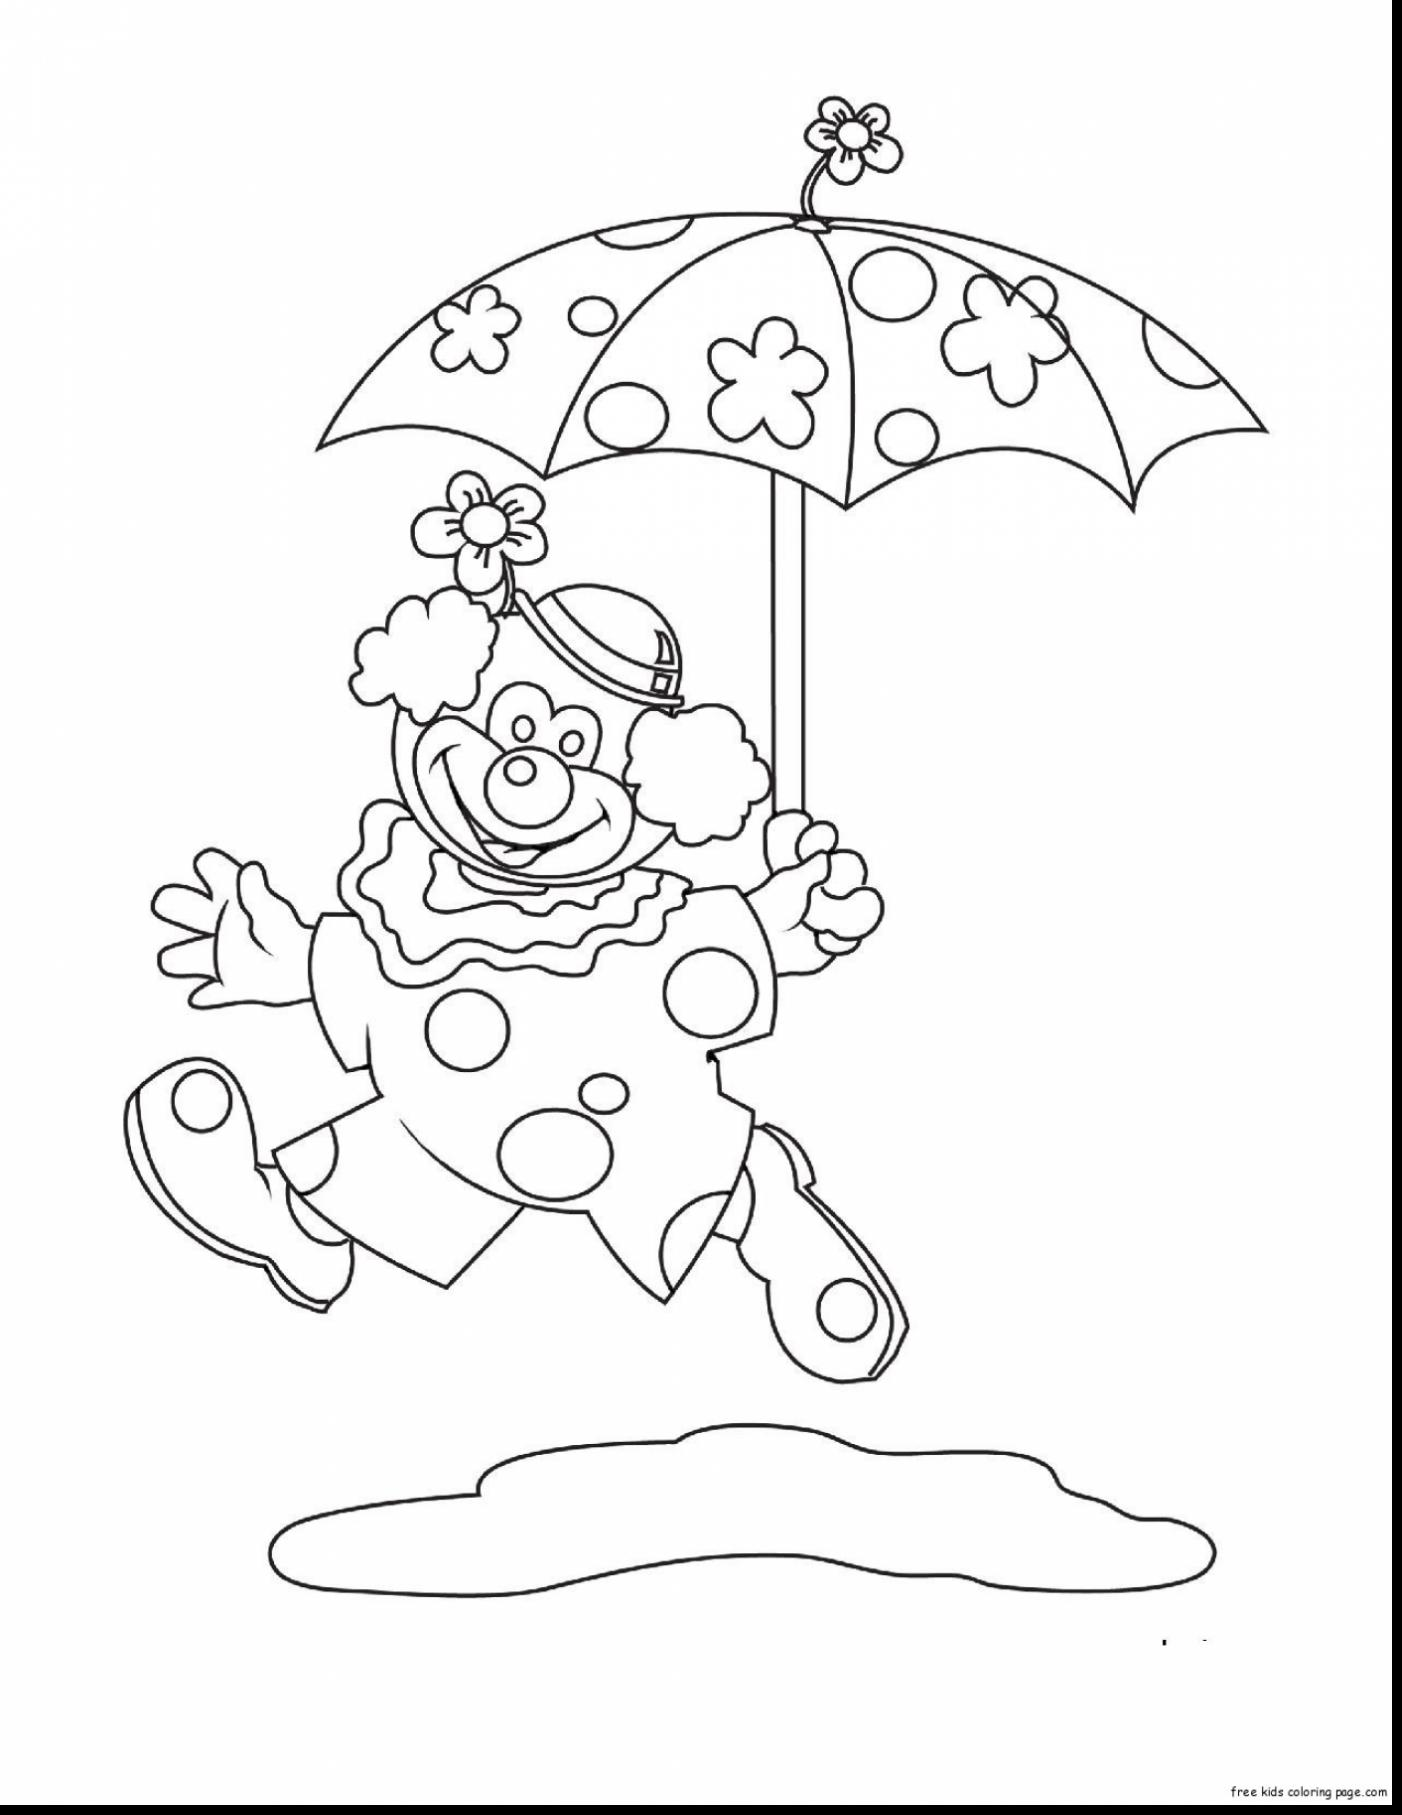 1402x1815 Excellent Simpsons Krusty The Clown Coloring Pages With Clown